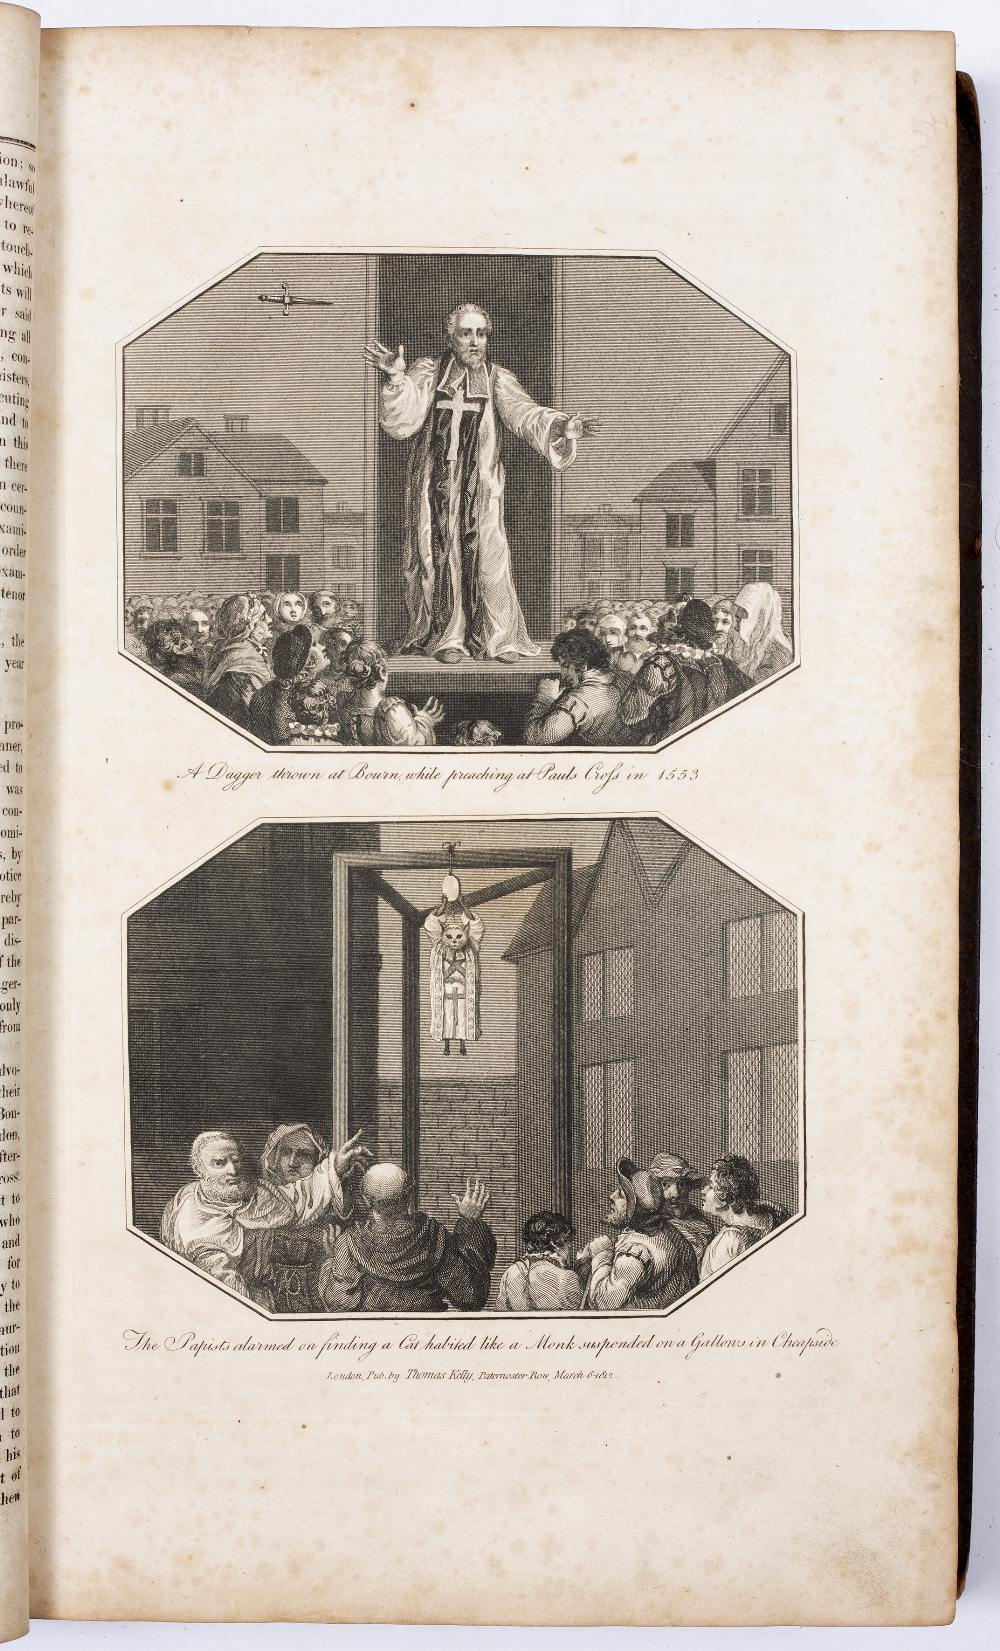 FOX, The Rev. John, The Book of Martyrs. Thomas Kelly, London 1811. Fo. plates throughout. - Image 2 of 3